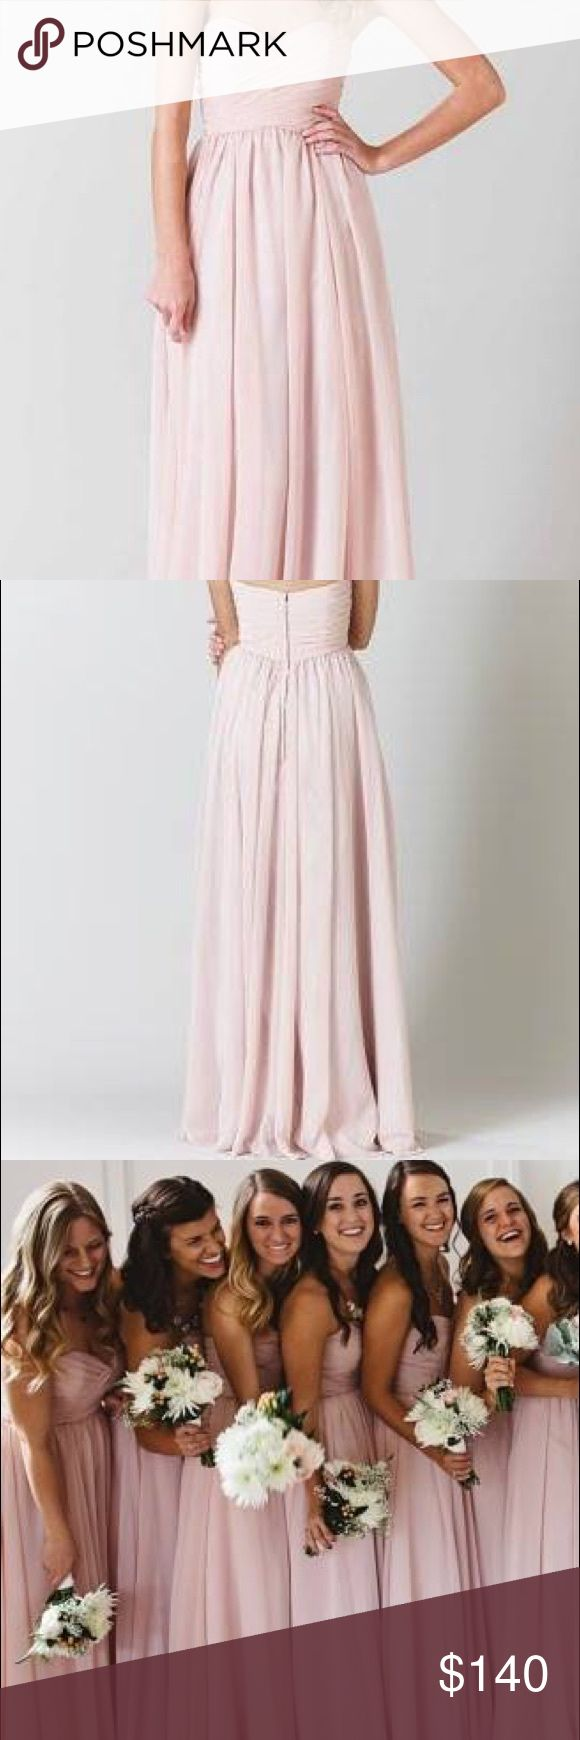 """Kennedy Blue """"Olivia"""" Bridesmaid Dress in Blush Floor length crinkle chiffon dress. Sweetheart neckline, A-line skirt, fully boned bodice, fully lined dress with a center back zip closure.  Purchased as a size 4, altered to a size 2. I am 125 lbs, 34B, 5' 4"""" and the dress fit perfectly. I wore 4"""" heels and the dress just hit the ground. The dress is in like-new, professionally dry-cleaned and has been preserved in it's dry cleaning bag in a smoke-free home. Currently retails for $185 on the…"""